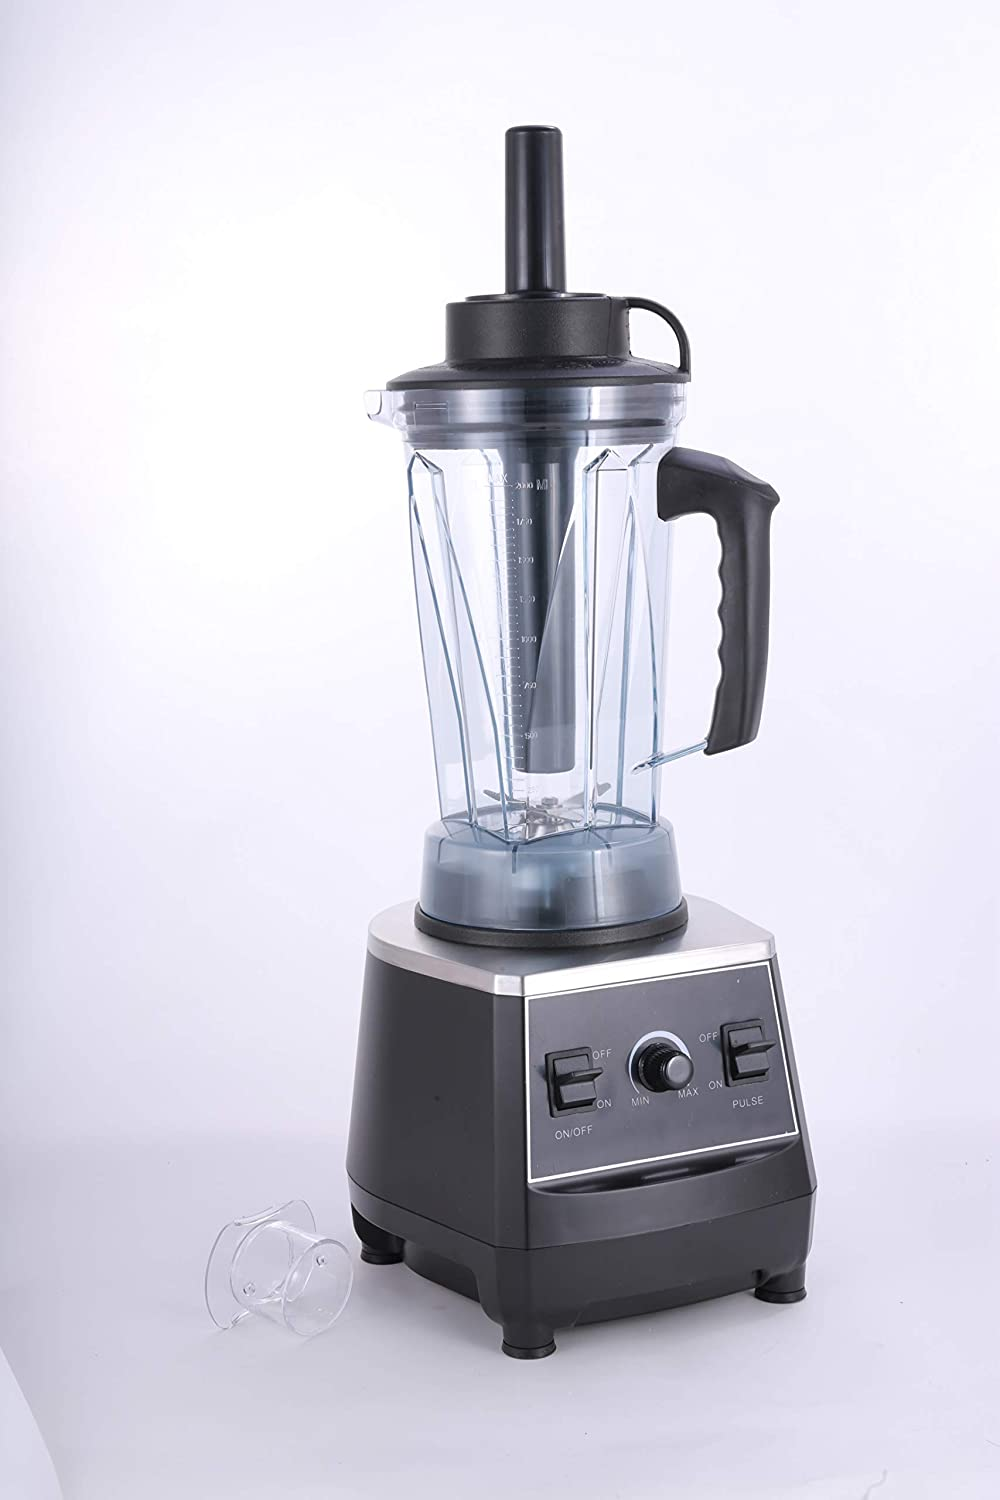 Hakka Commercial Professional Blender for Shakes and Smoothies, 1500W Multi- Function Smoothie Maker, 32000RPM Food Processor with 2L 8-Cup Jar